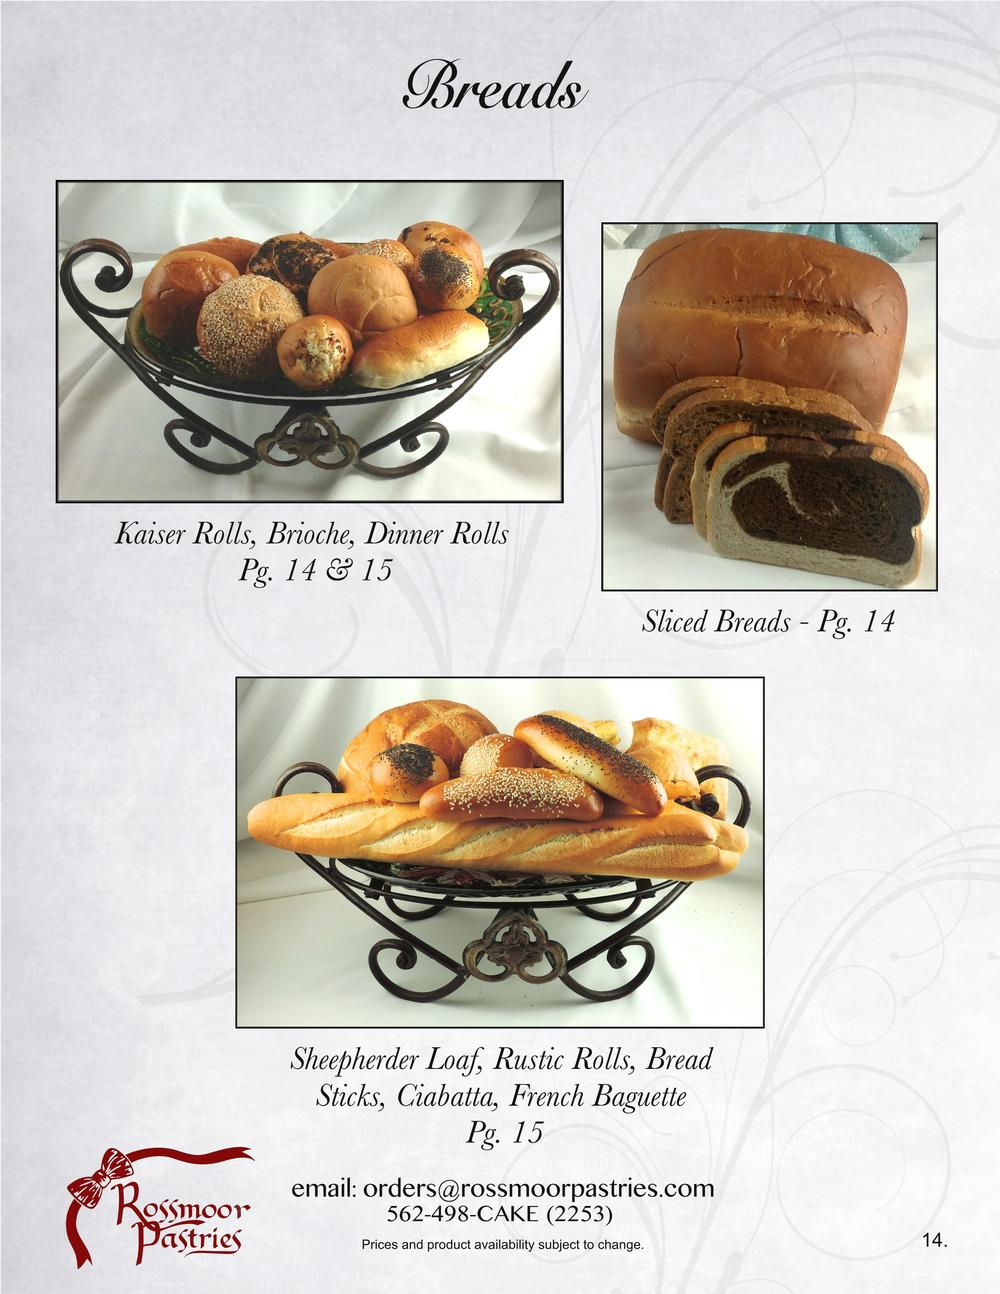 14 Breads-page001.jpg